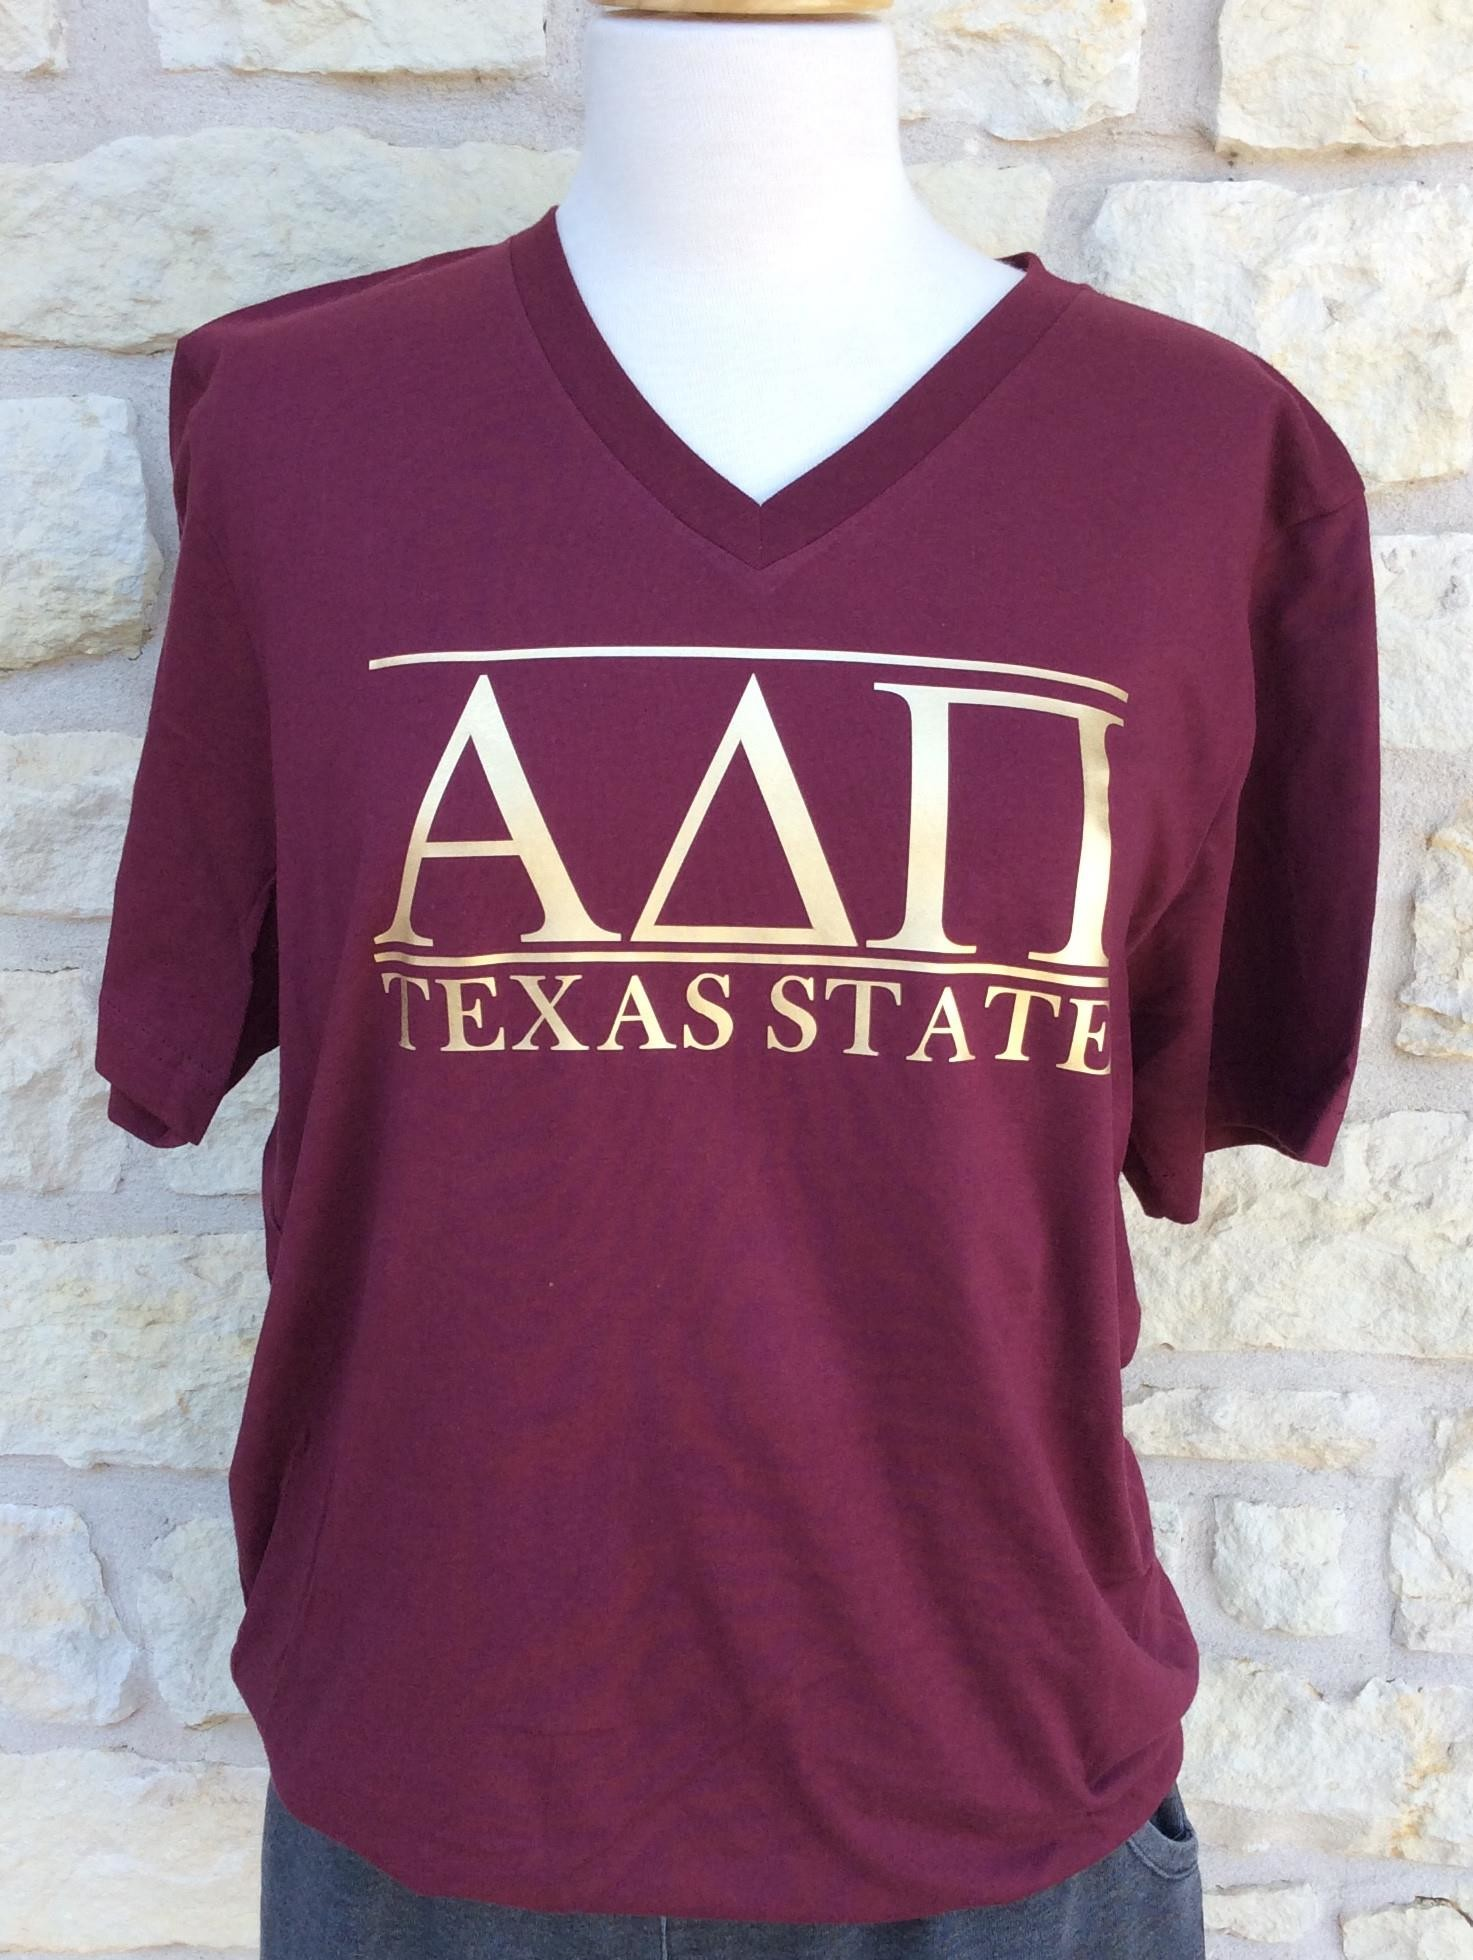 Greek Game Day V-Neck, Texas State Apparel, Custom Greek Life T-shirt